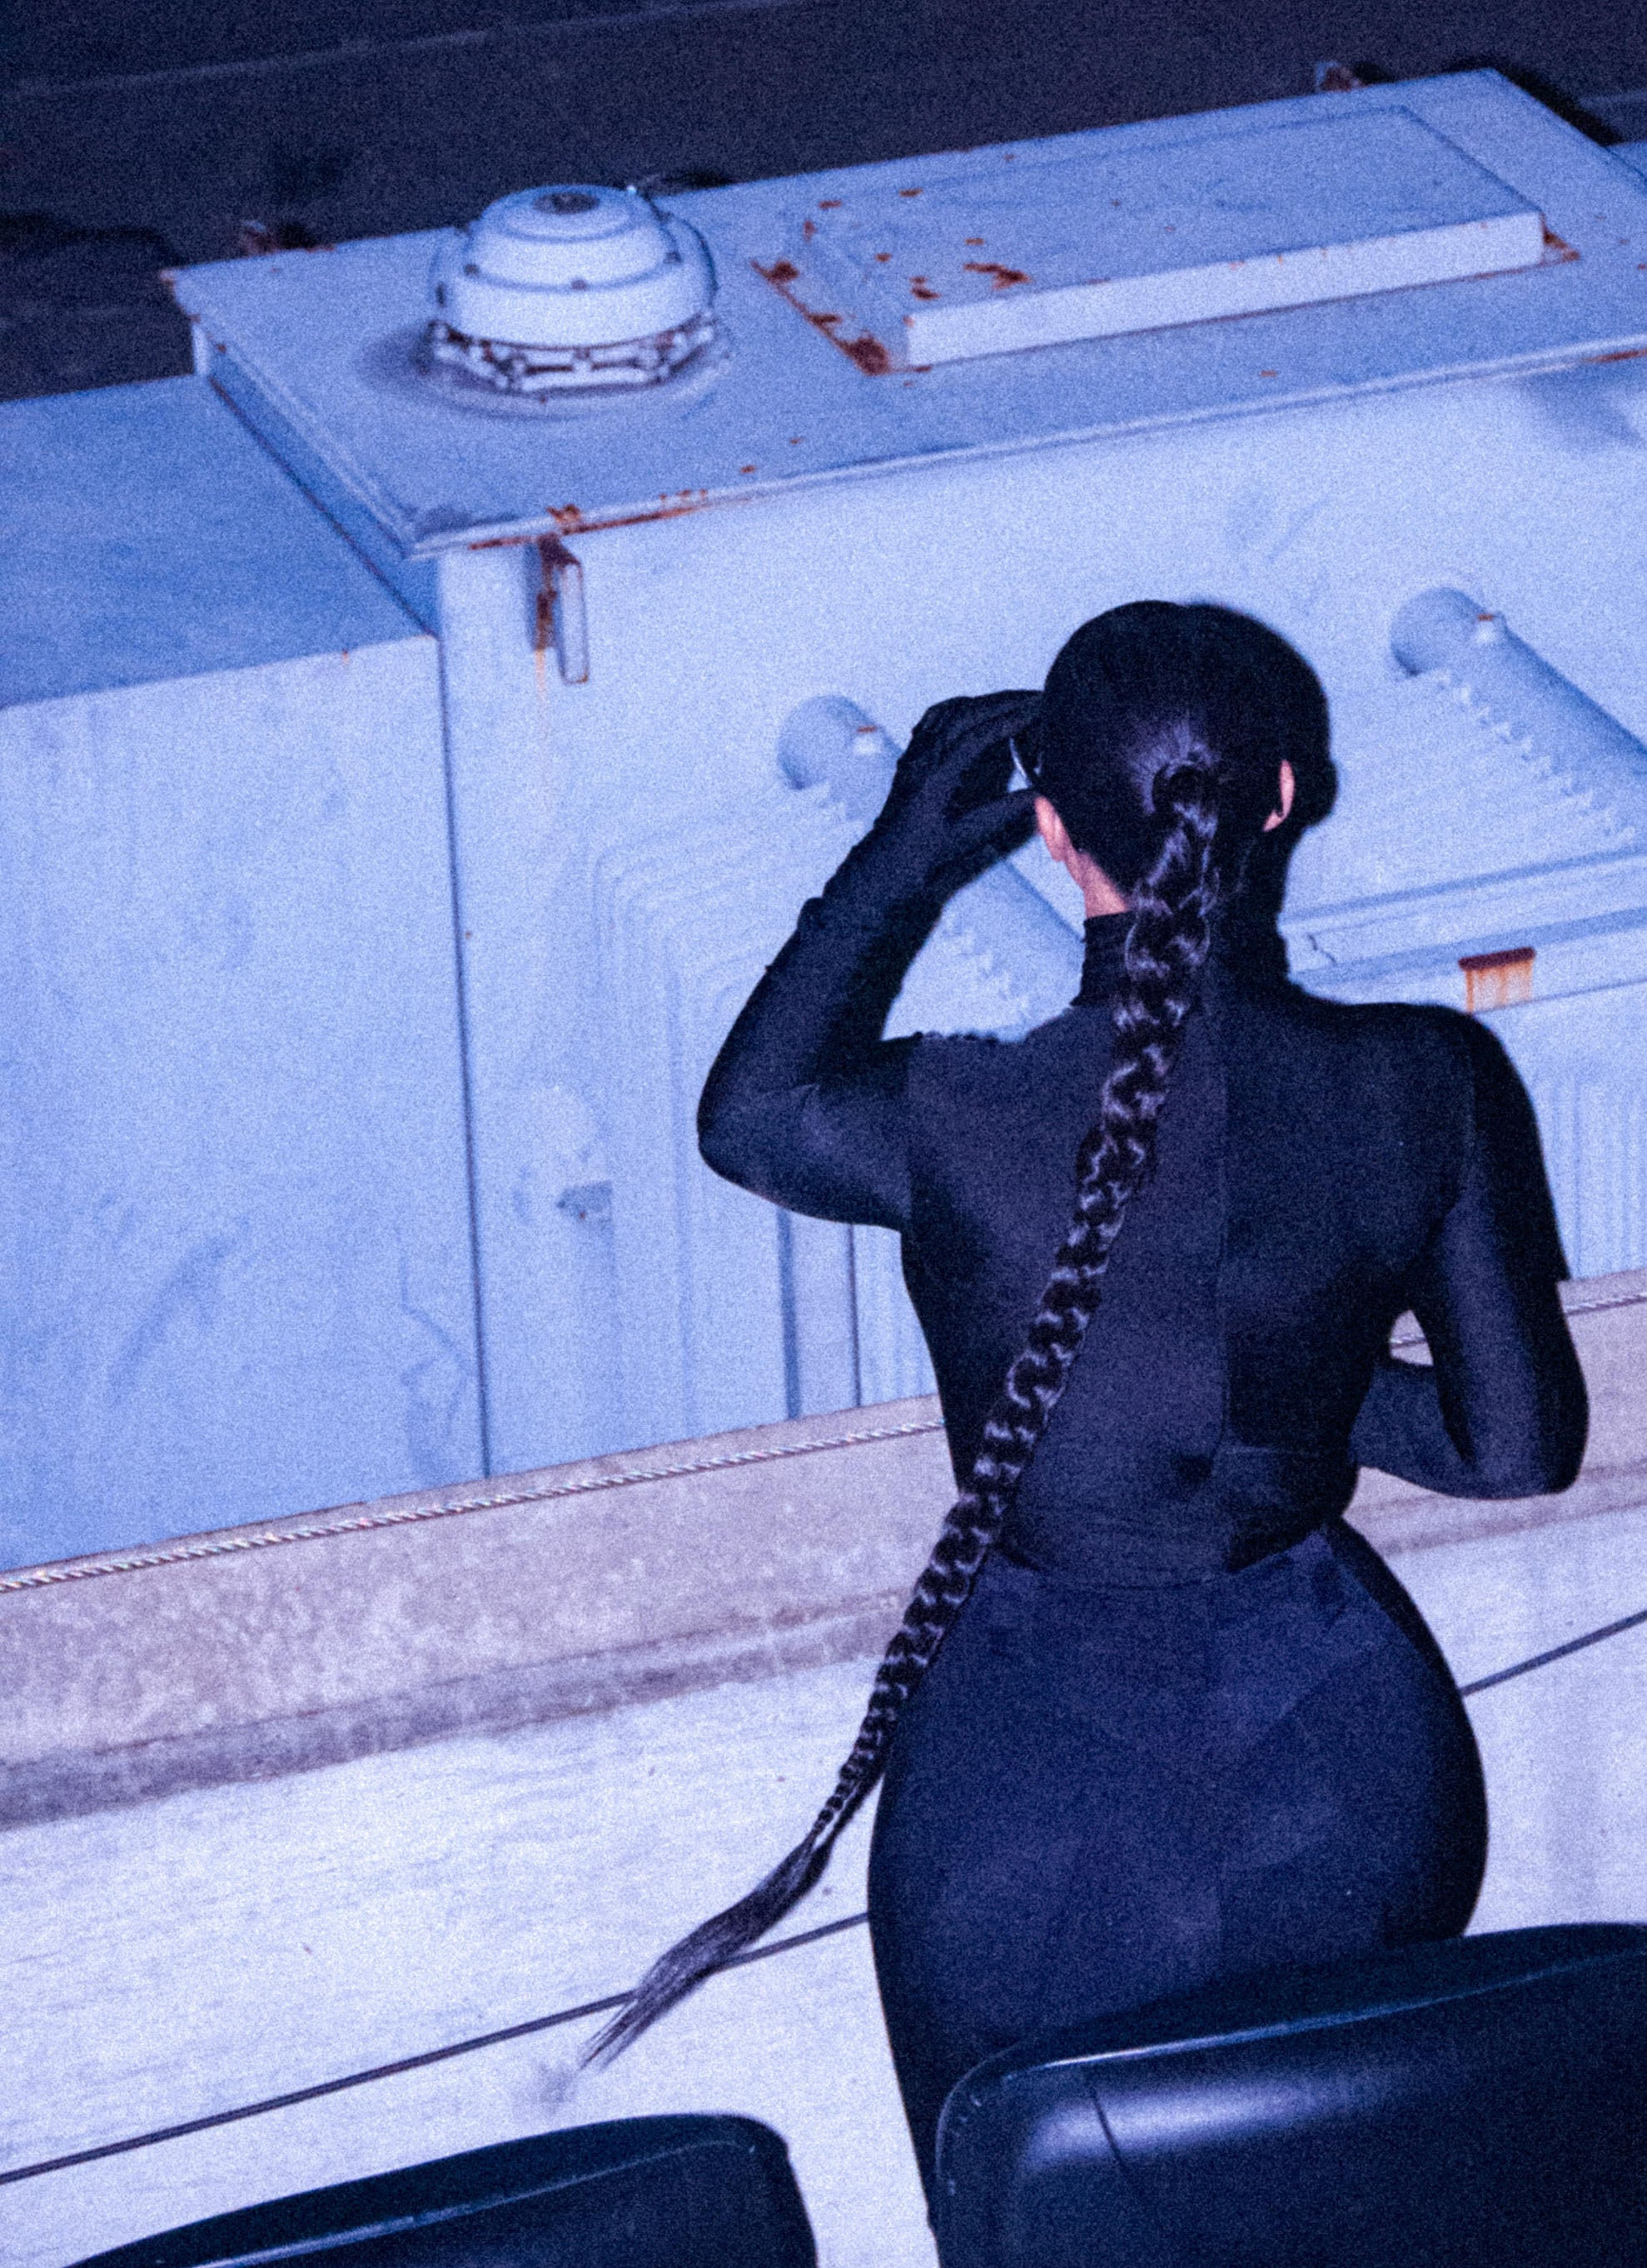 Kim wore a tight, full bodysuit and wore her hair in a long braided ponytail